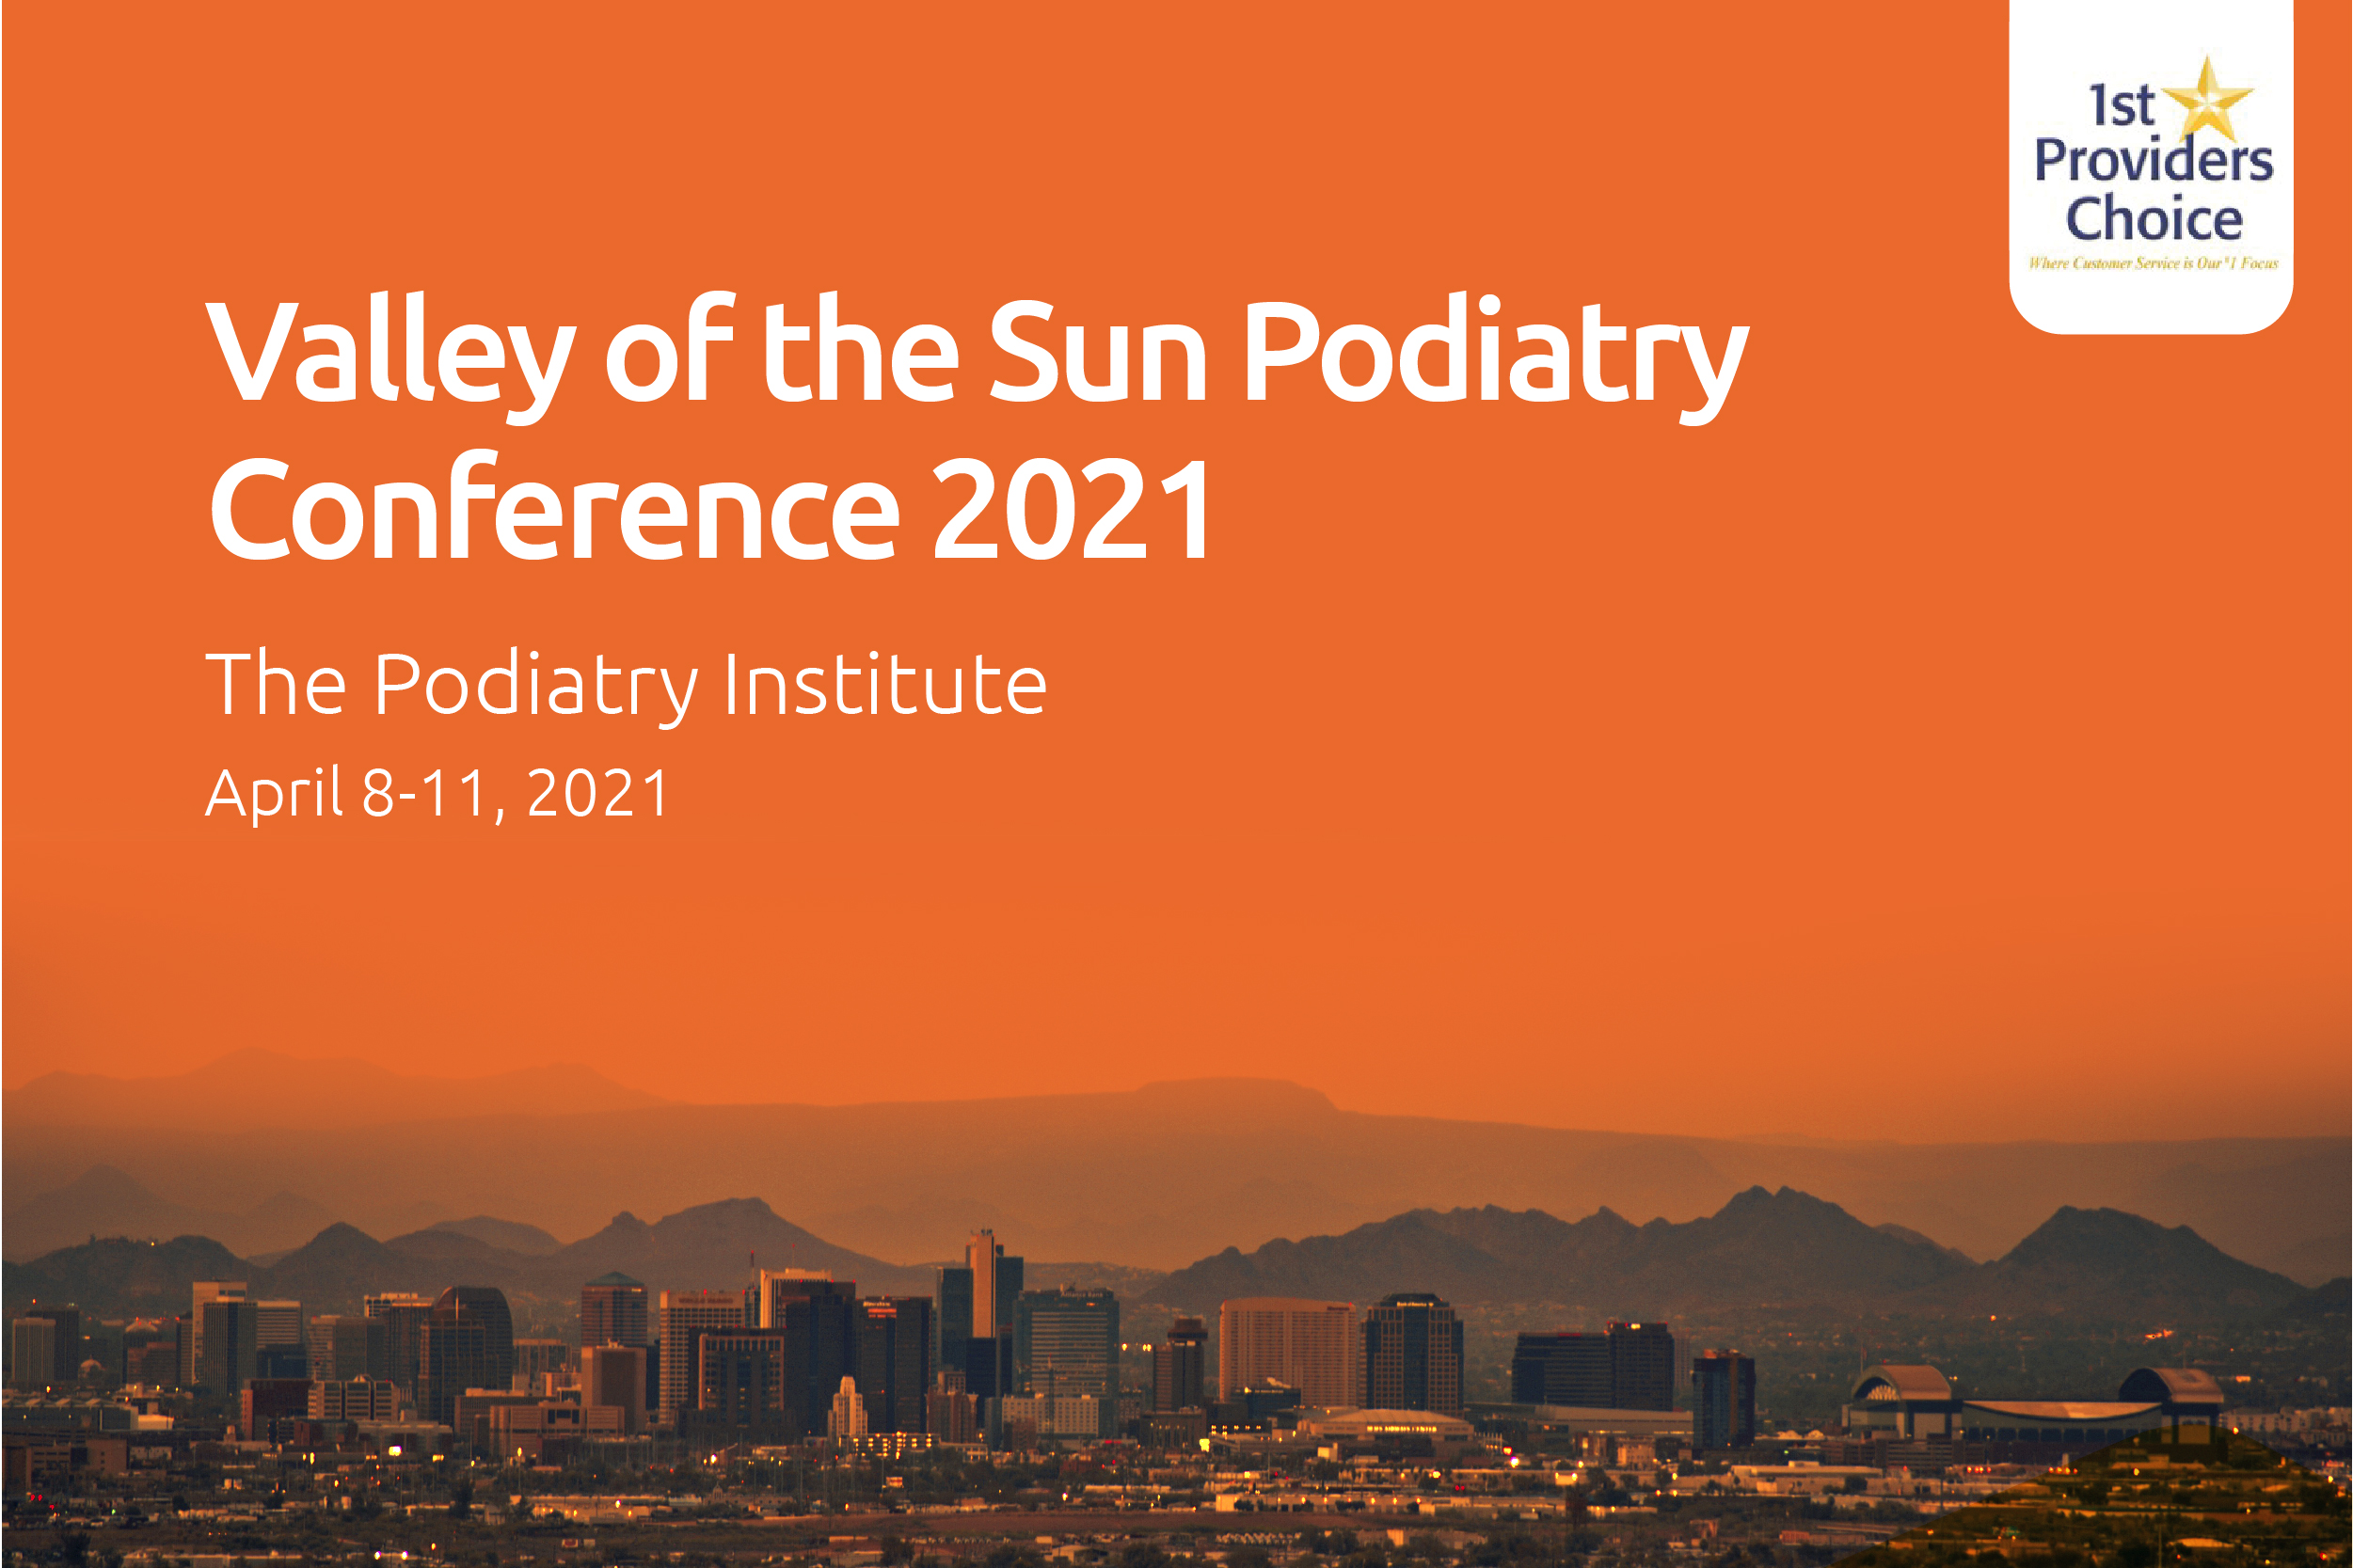 valley of the sun podiatry conference 2021